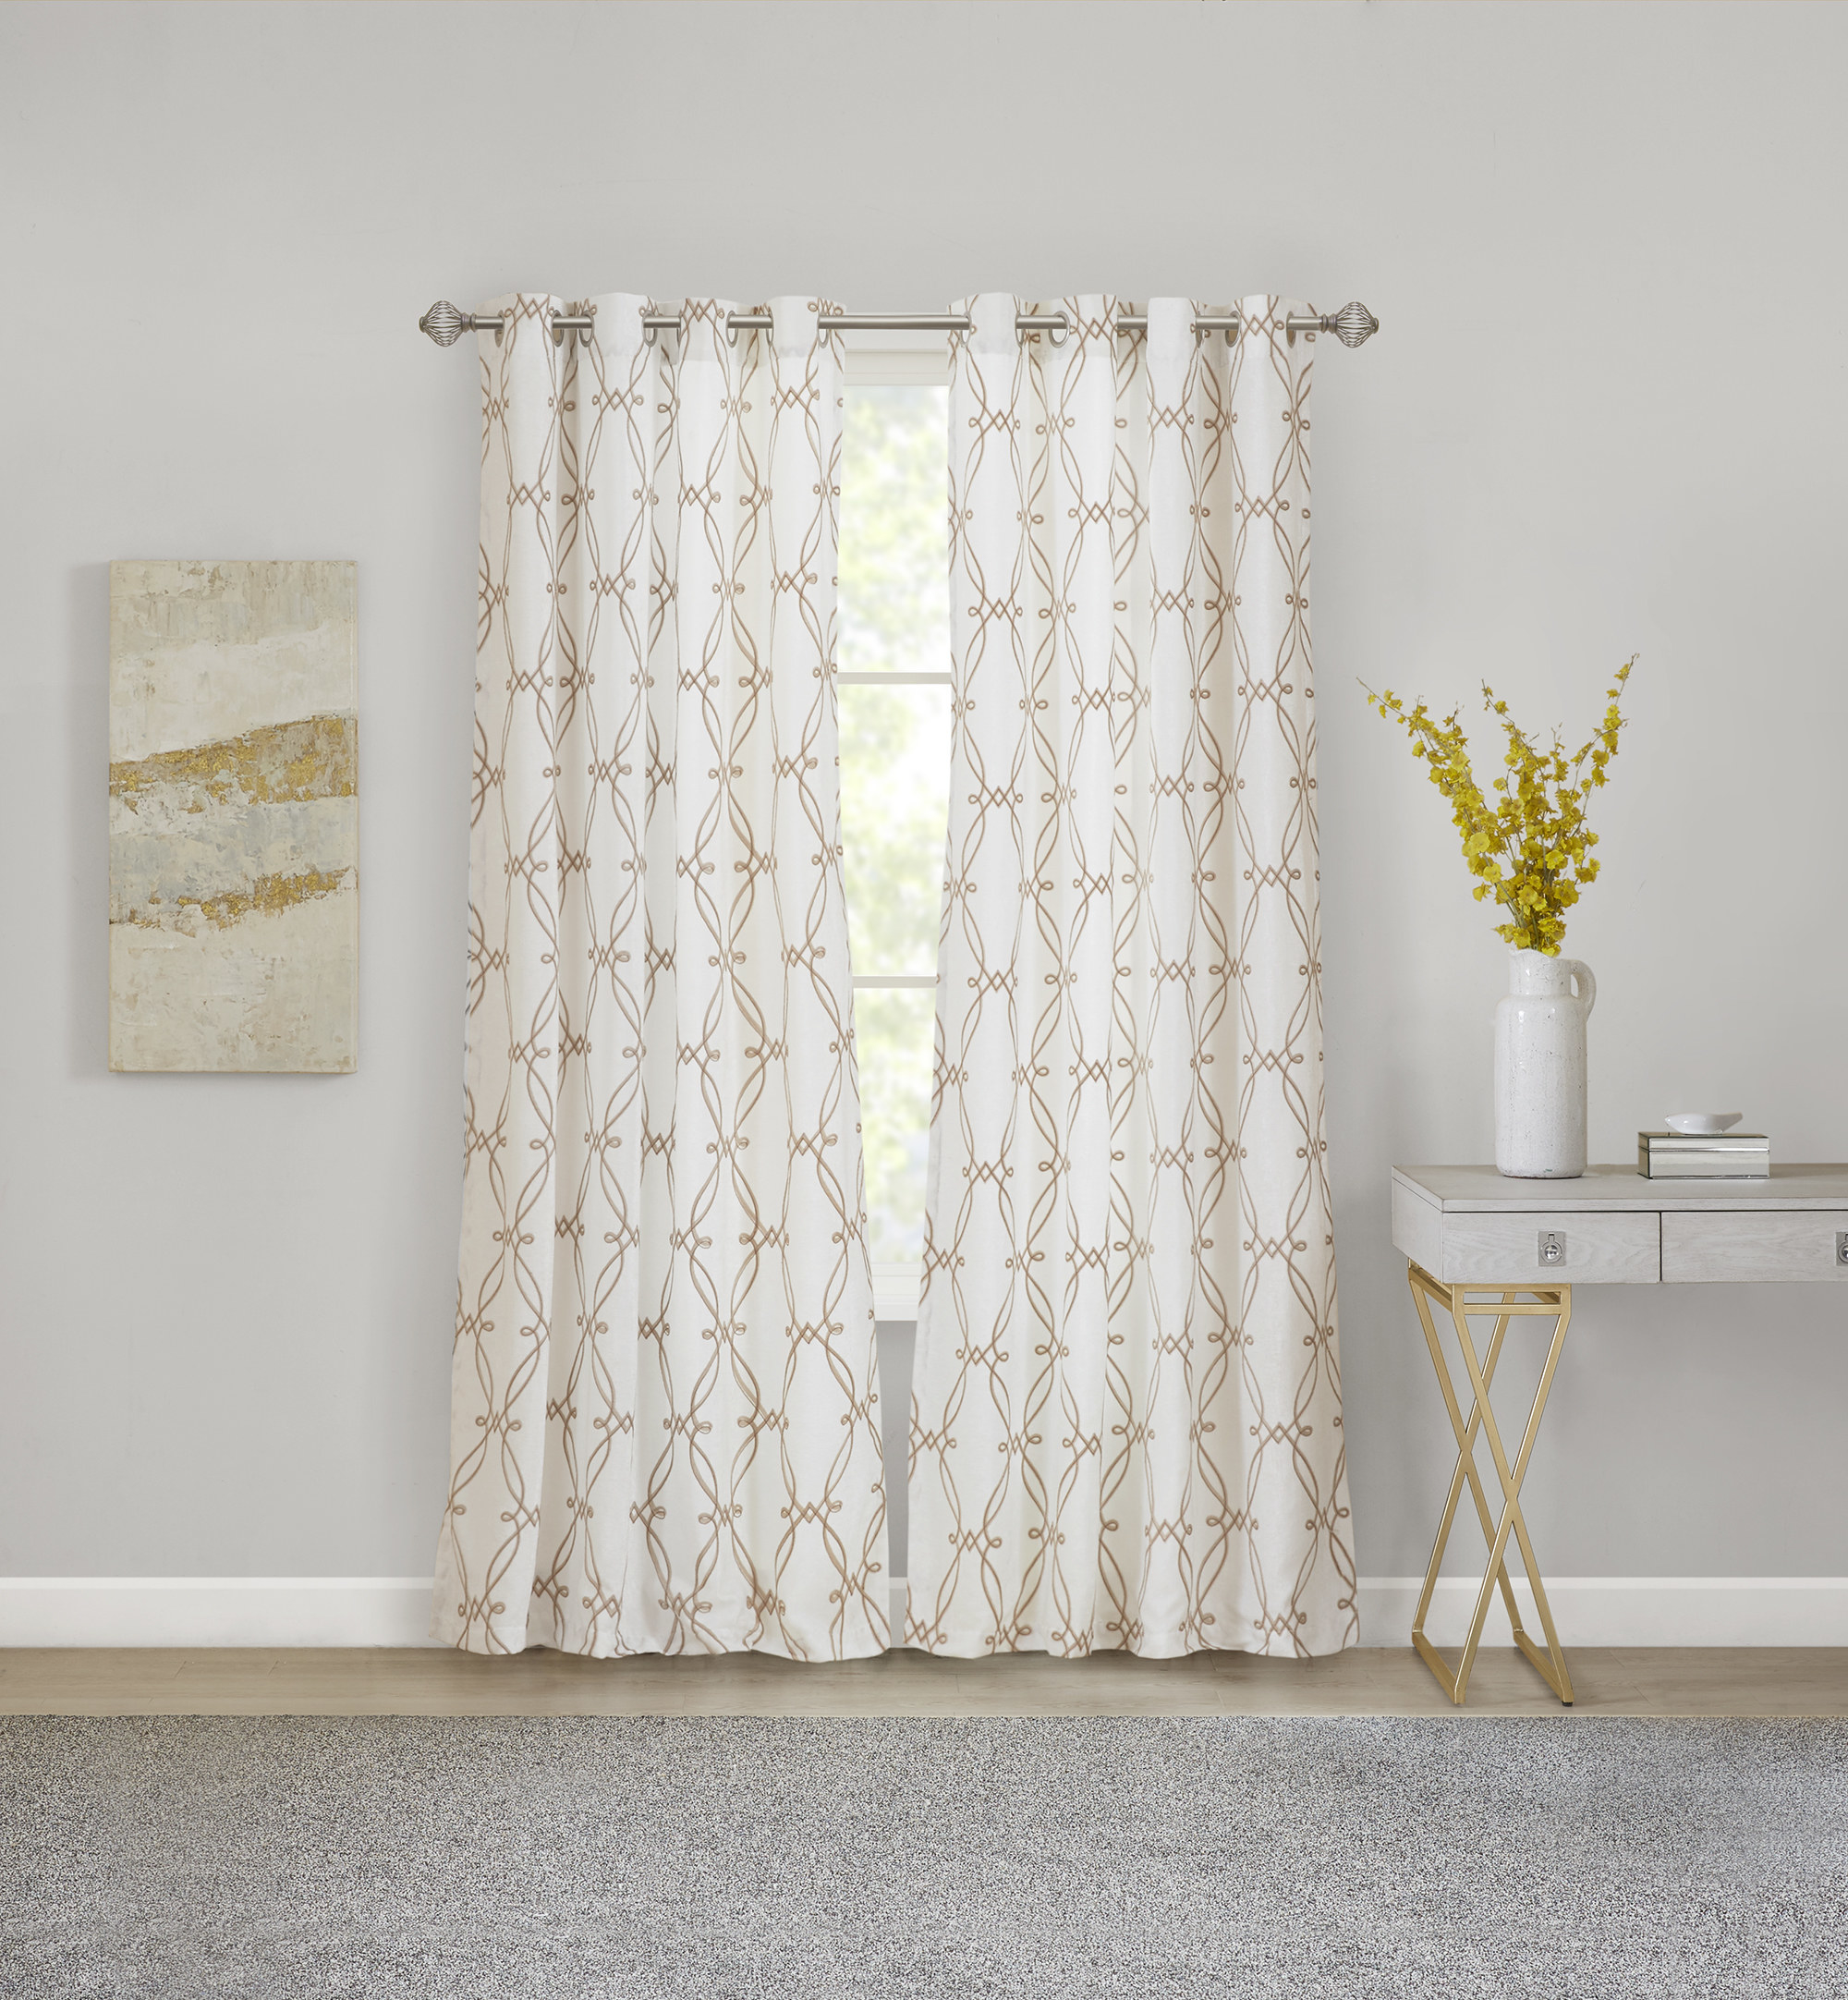 the curtain panel